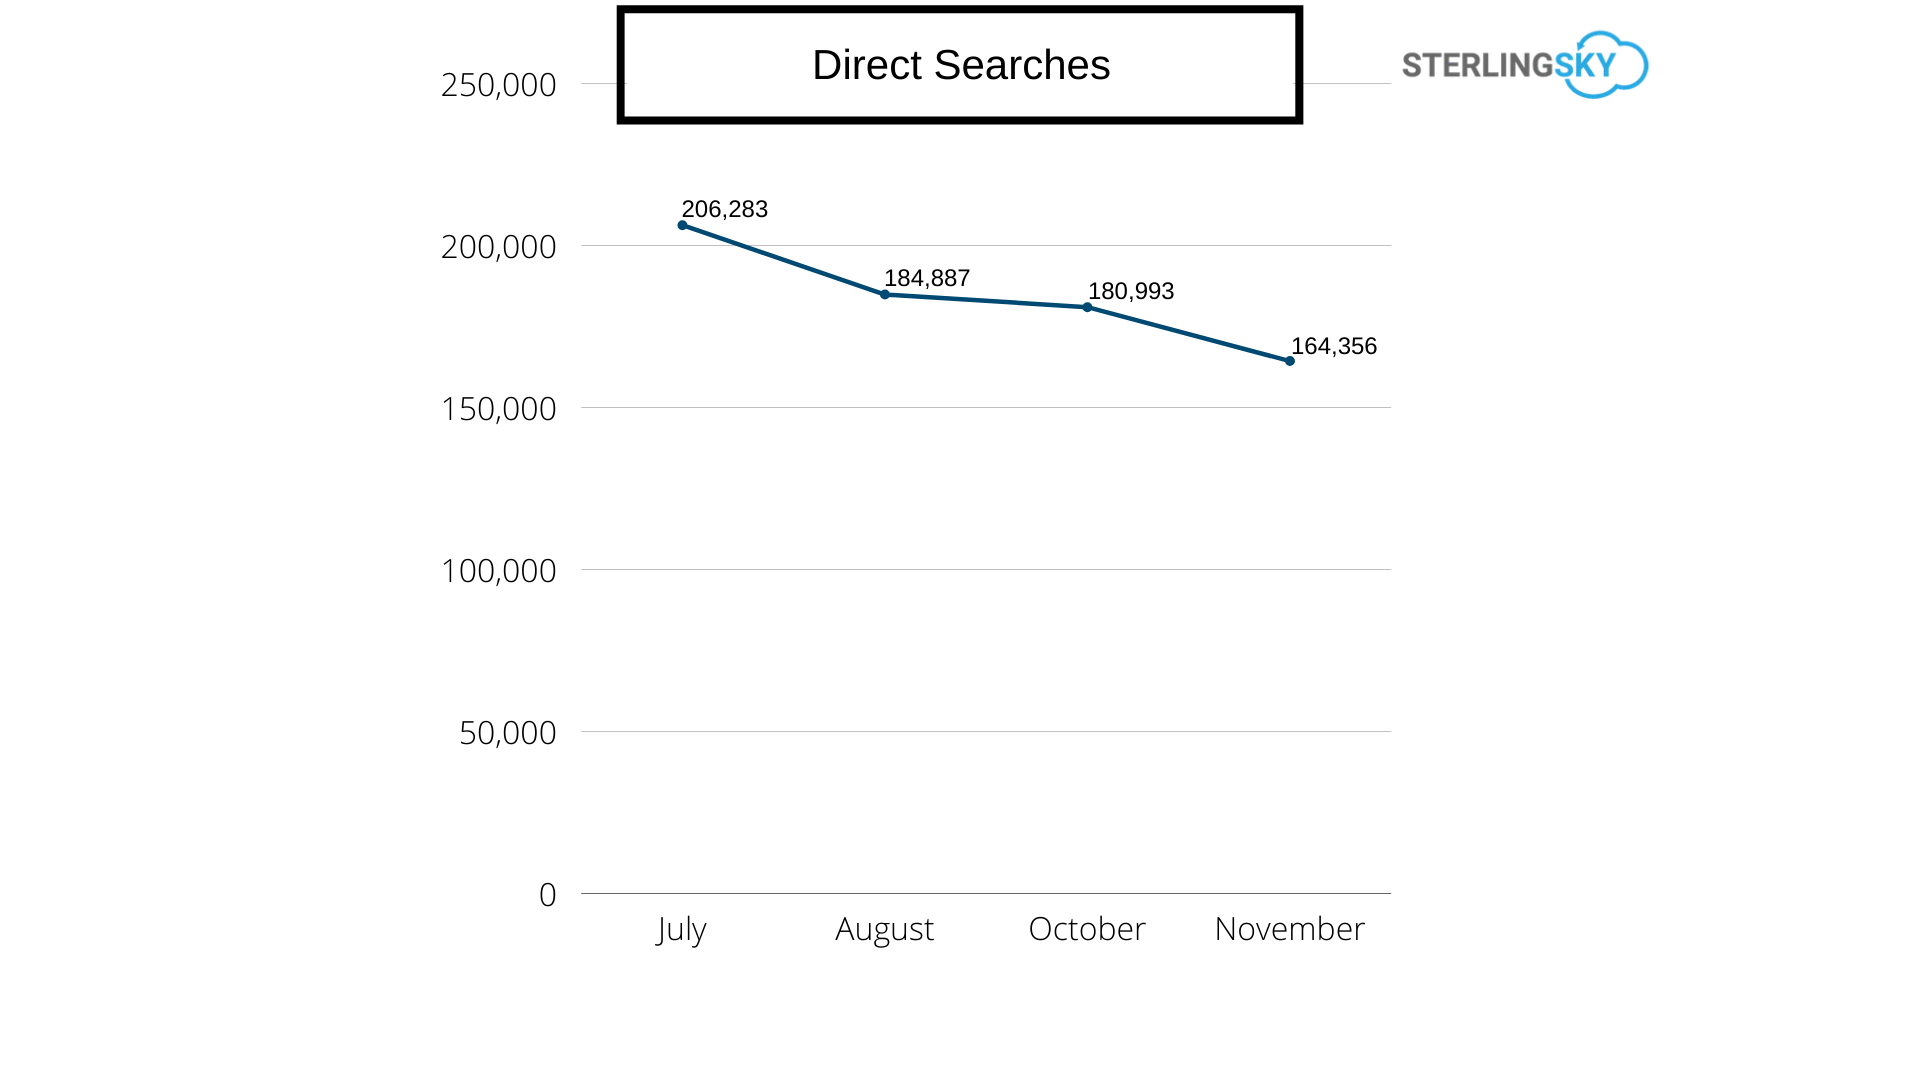 direct searches by month